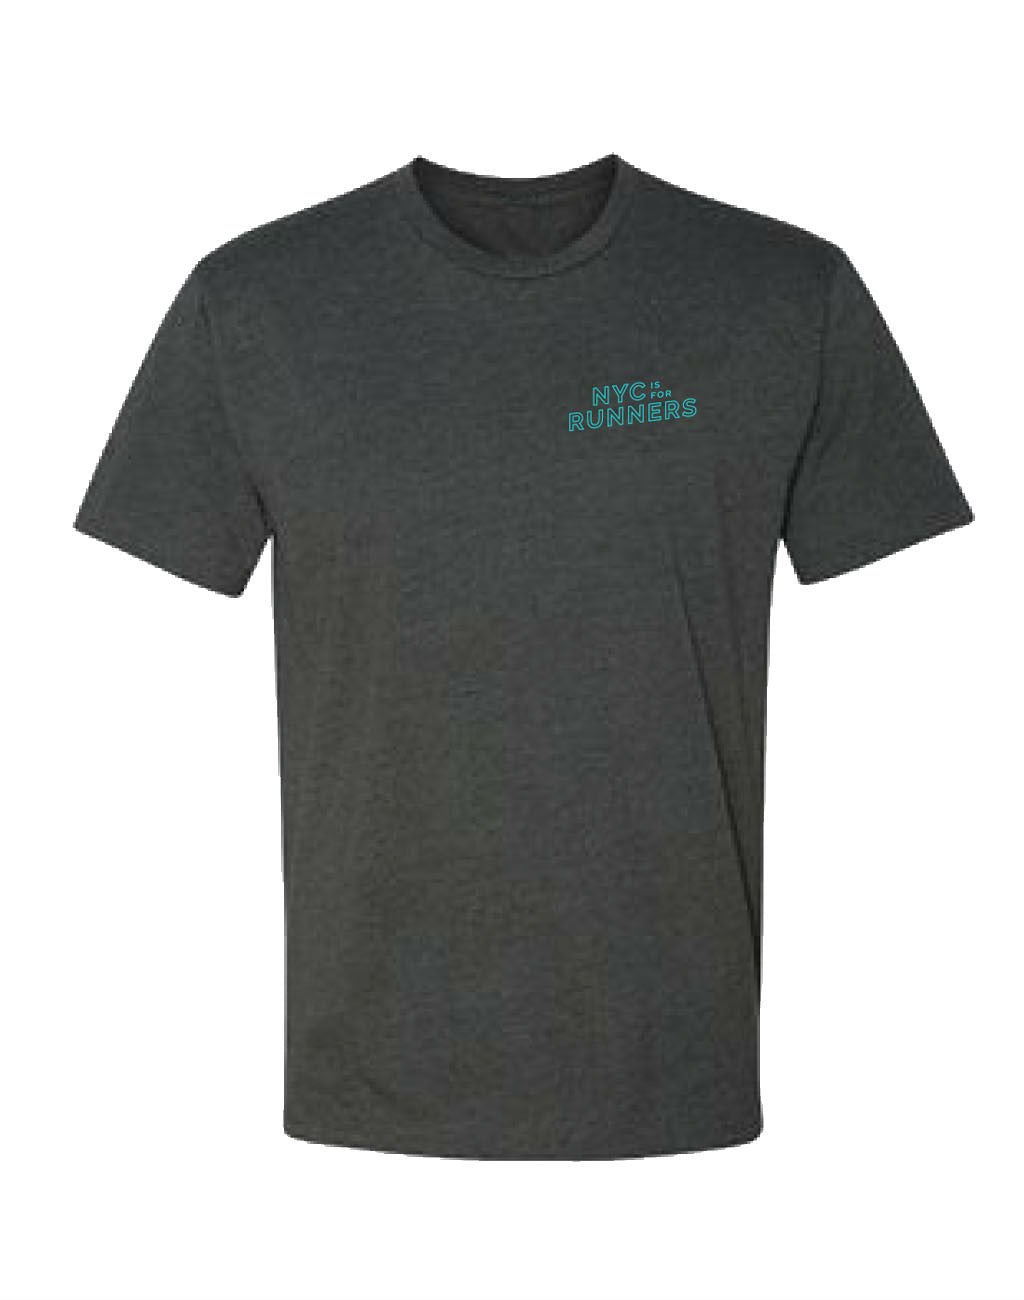 Runkeeper NYC is for Runners Tee (Men's)Charcoal Grey_master_image